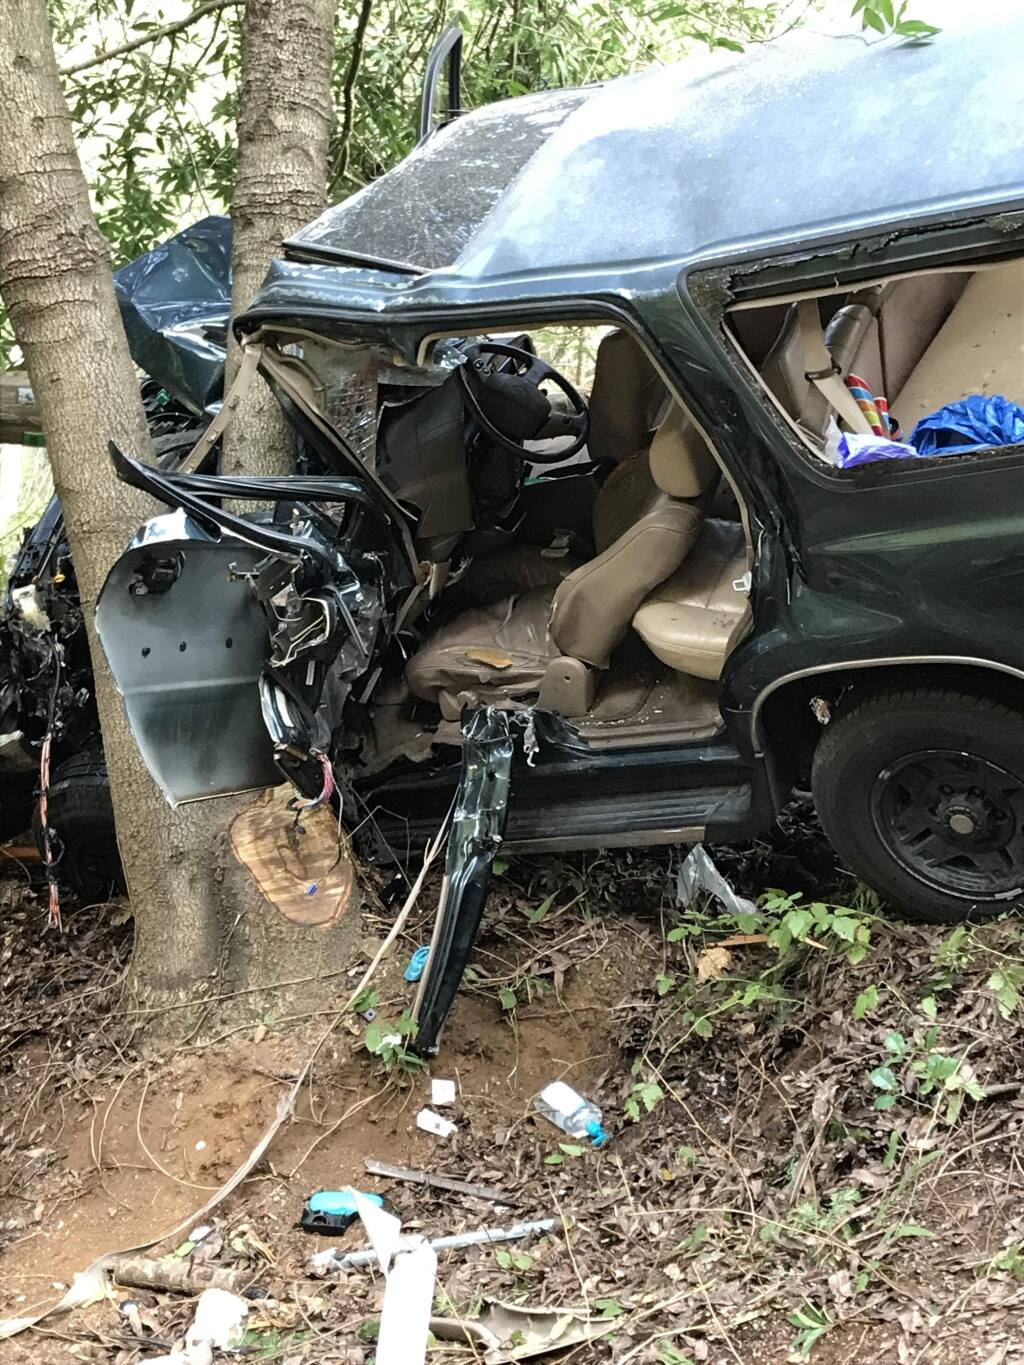 A woman was injured after crashing her vehicle into some trees off Highway 116 in Forestville on Tuesday, Feb. 20, 2018. (COURTESY OF FAVE FRANCESCHI/ FORESTVILLE FIRE PROTECTION DISTRICT)